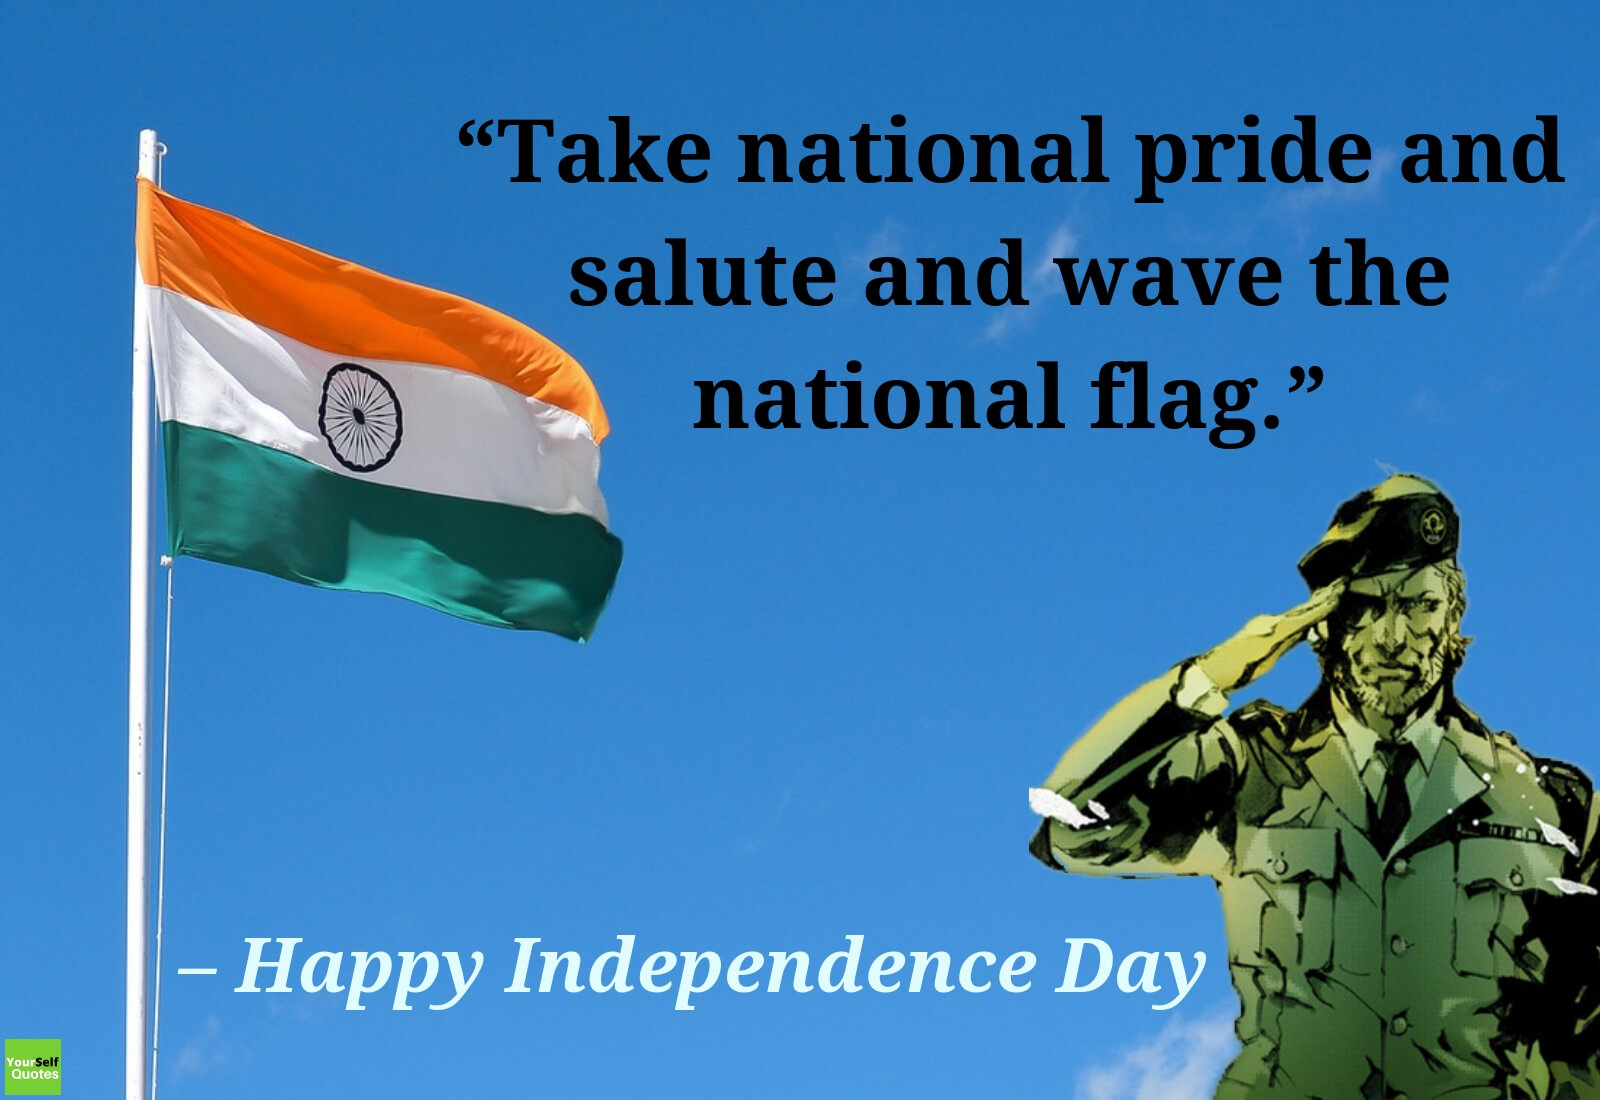 2019 Independence Day Quotes Wishes With Images [15th August]